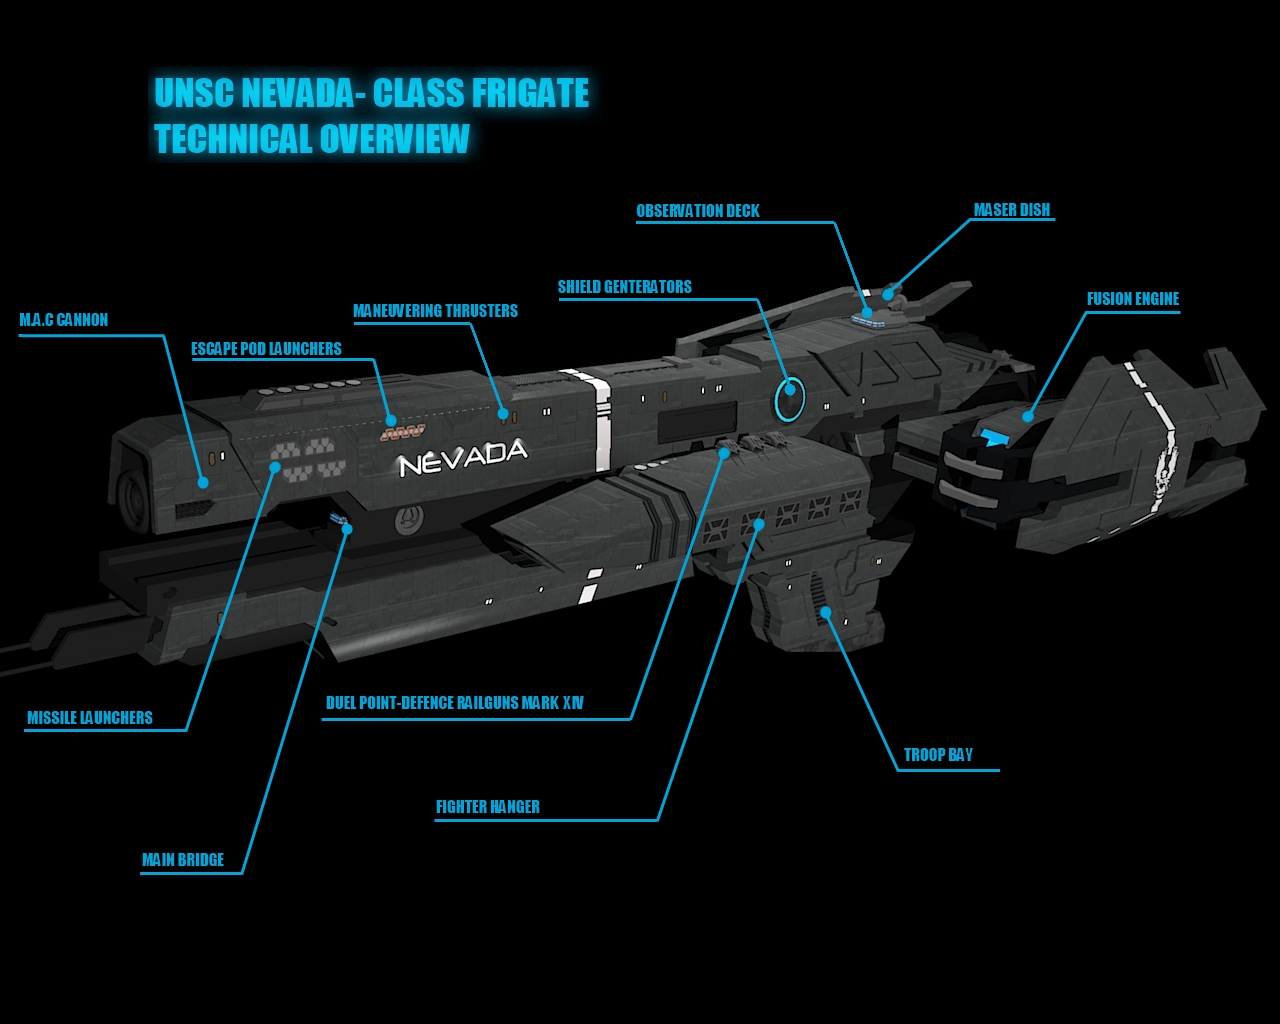 Halo Frigate Nevada- Technical Overview by calamitySi